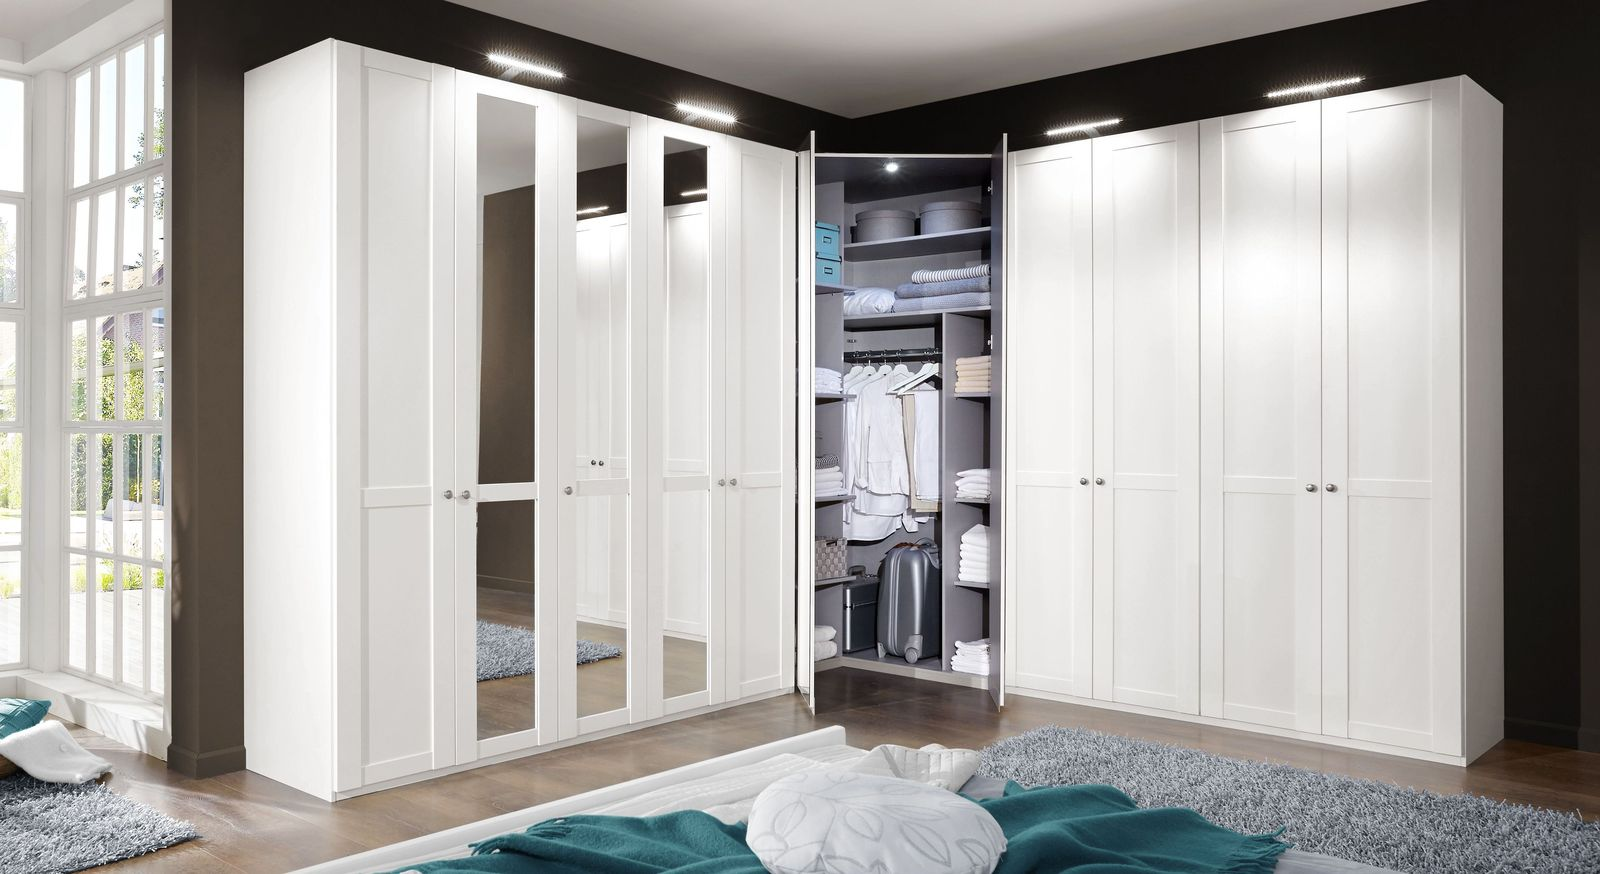 eck kleiderschrank mit spiegel im modernen landhausstil alvito. Black Bedroom Furniture Sets. Home Design Ideas